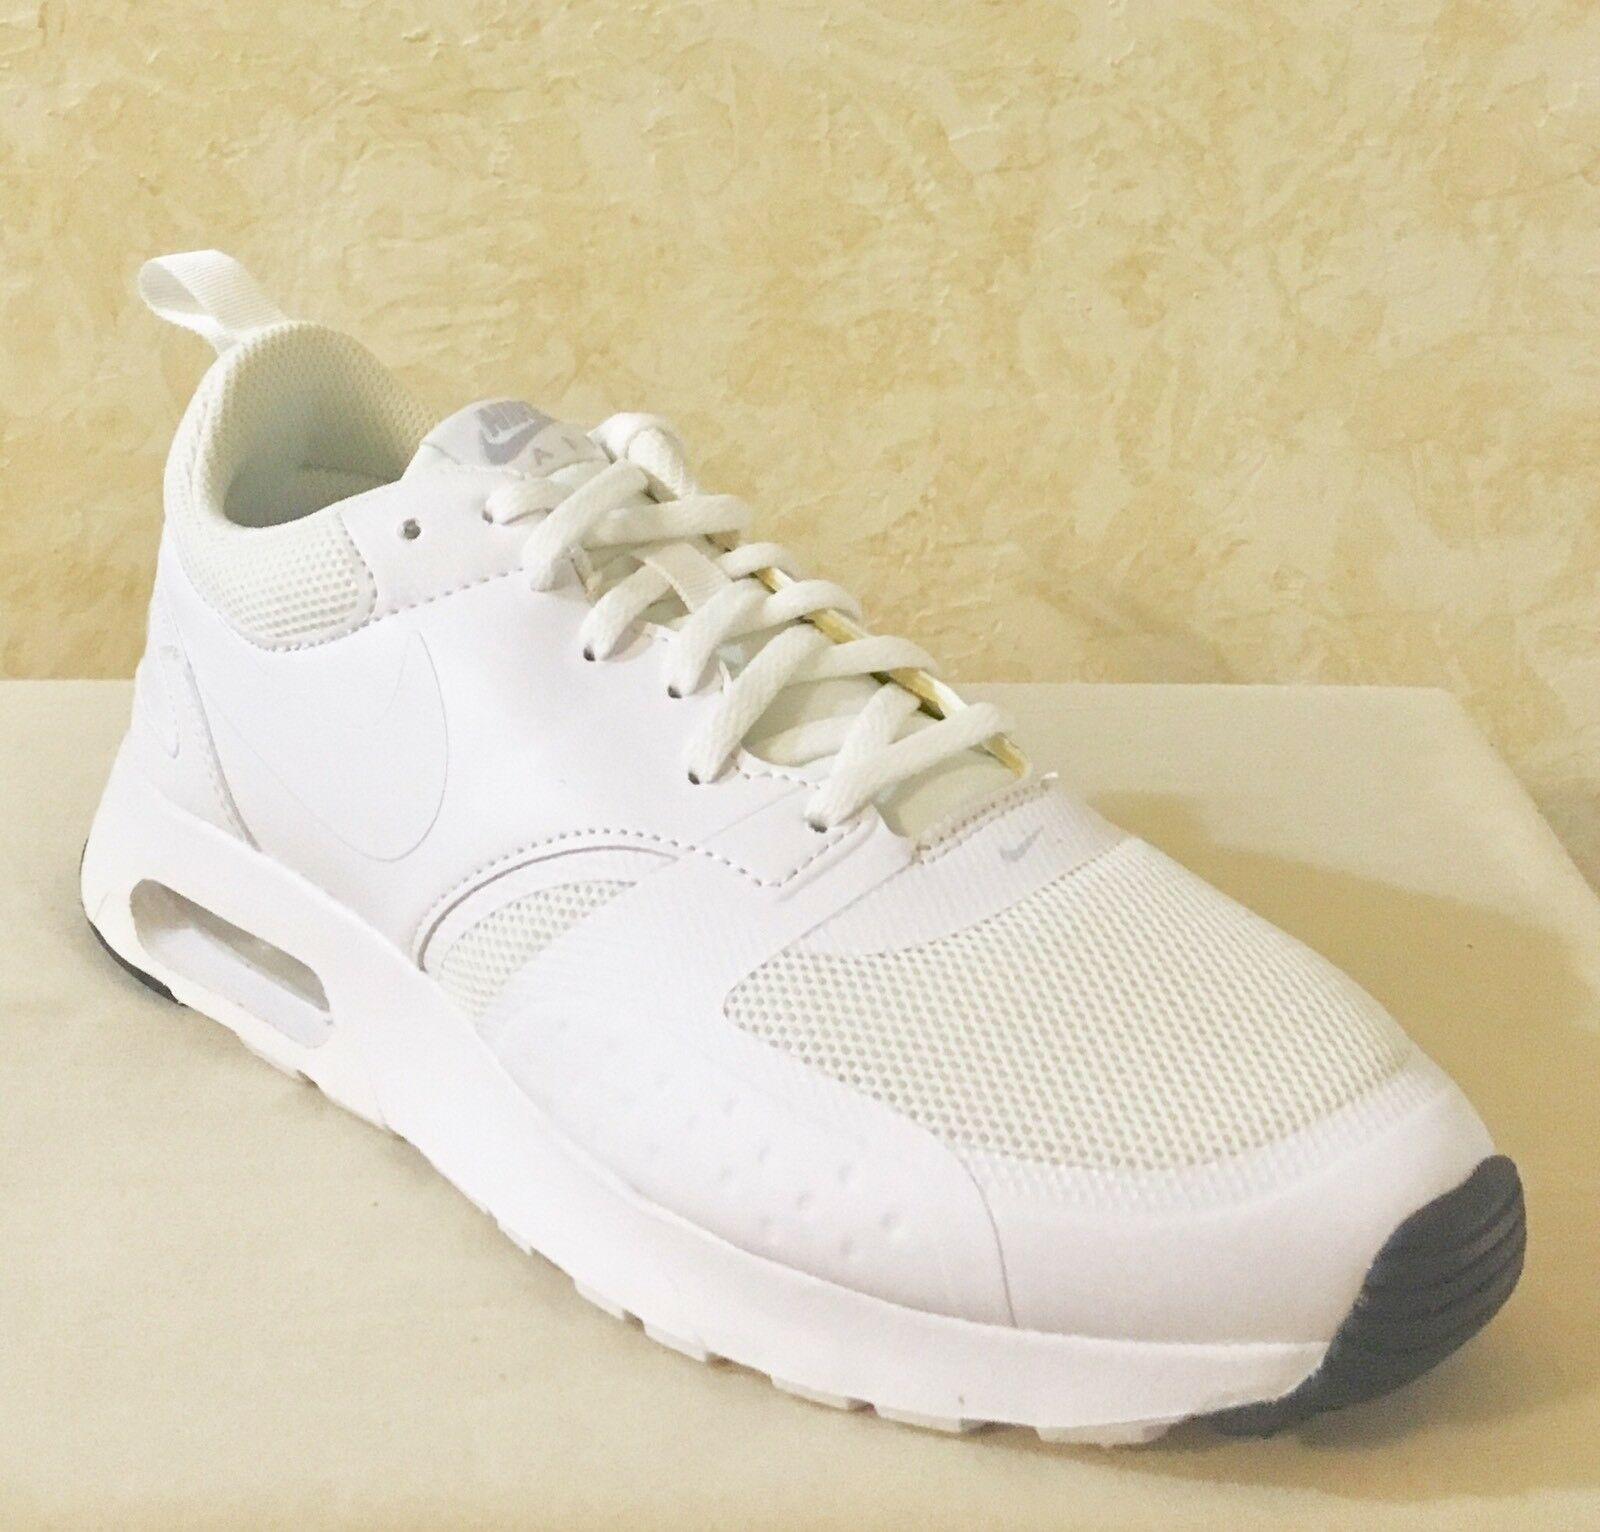 Men Nike Air Max Vision Platinum Athletic Training Shoes White-pure Platinum Vision 918230-101 b808ac